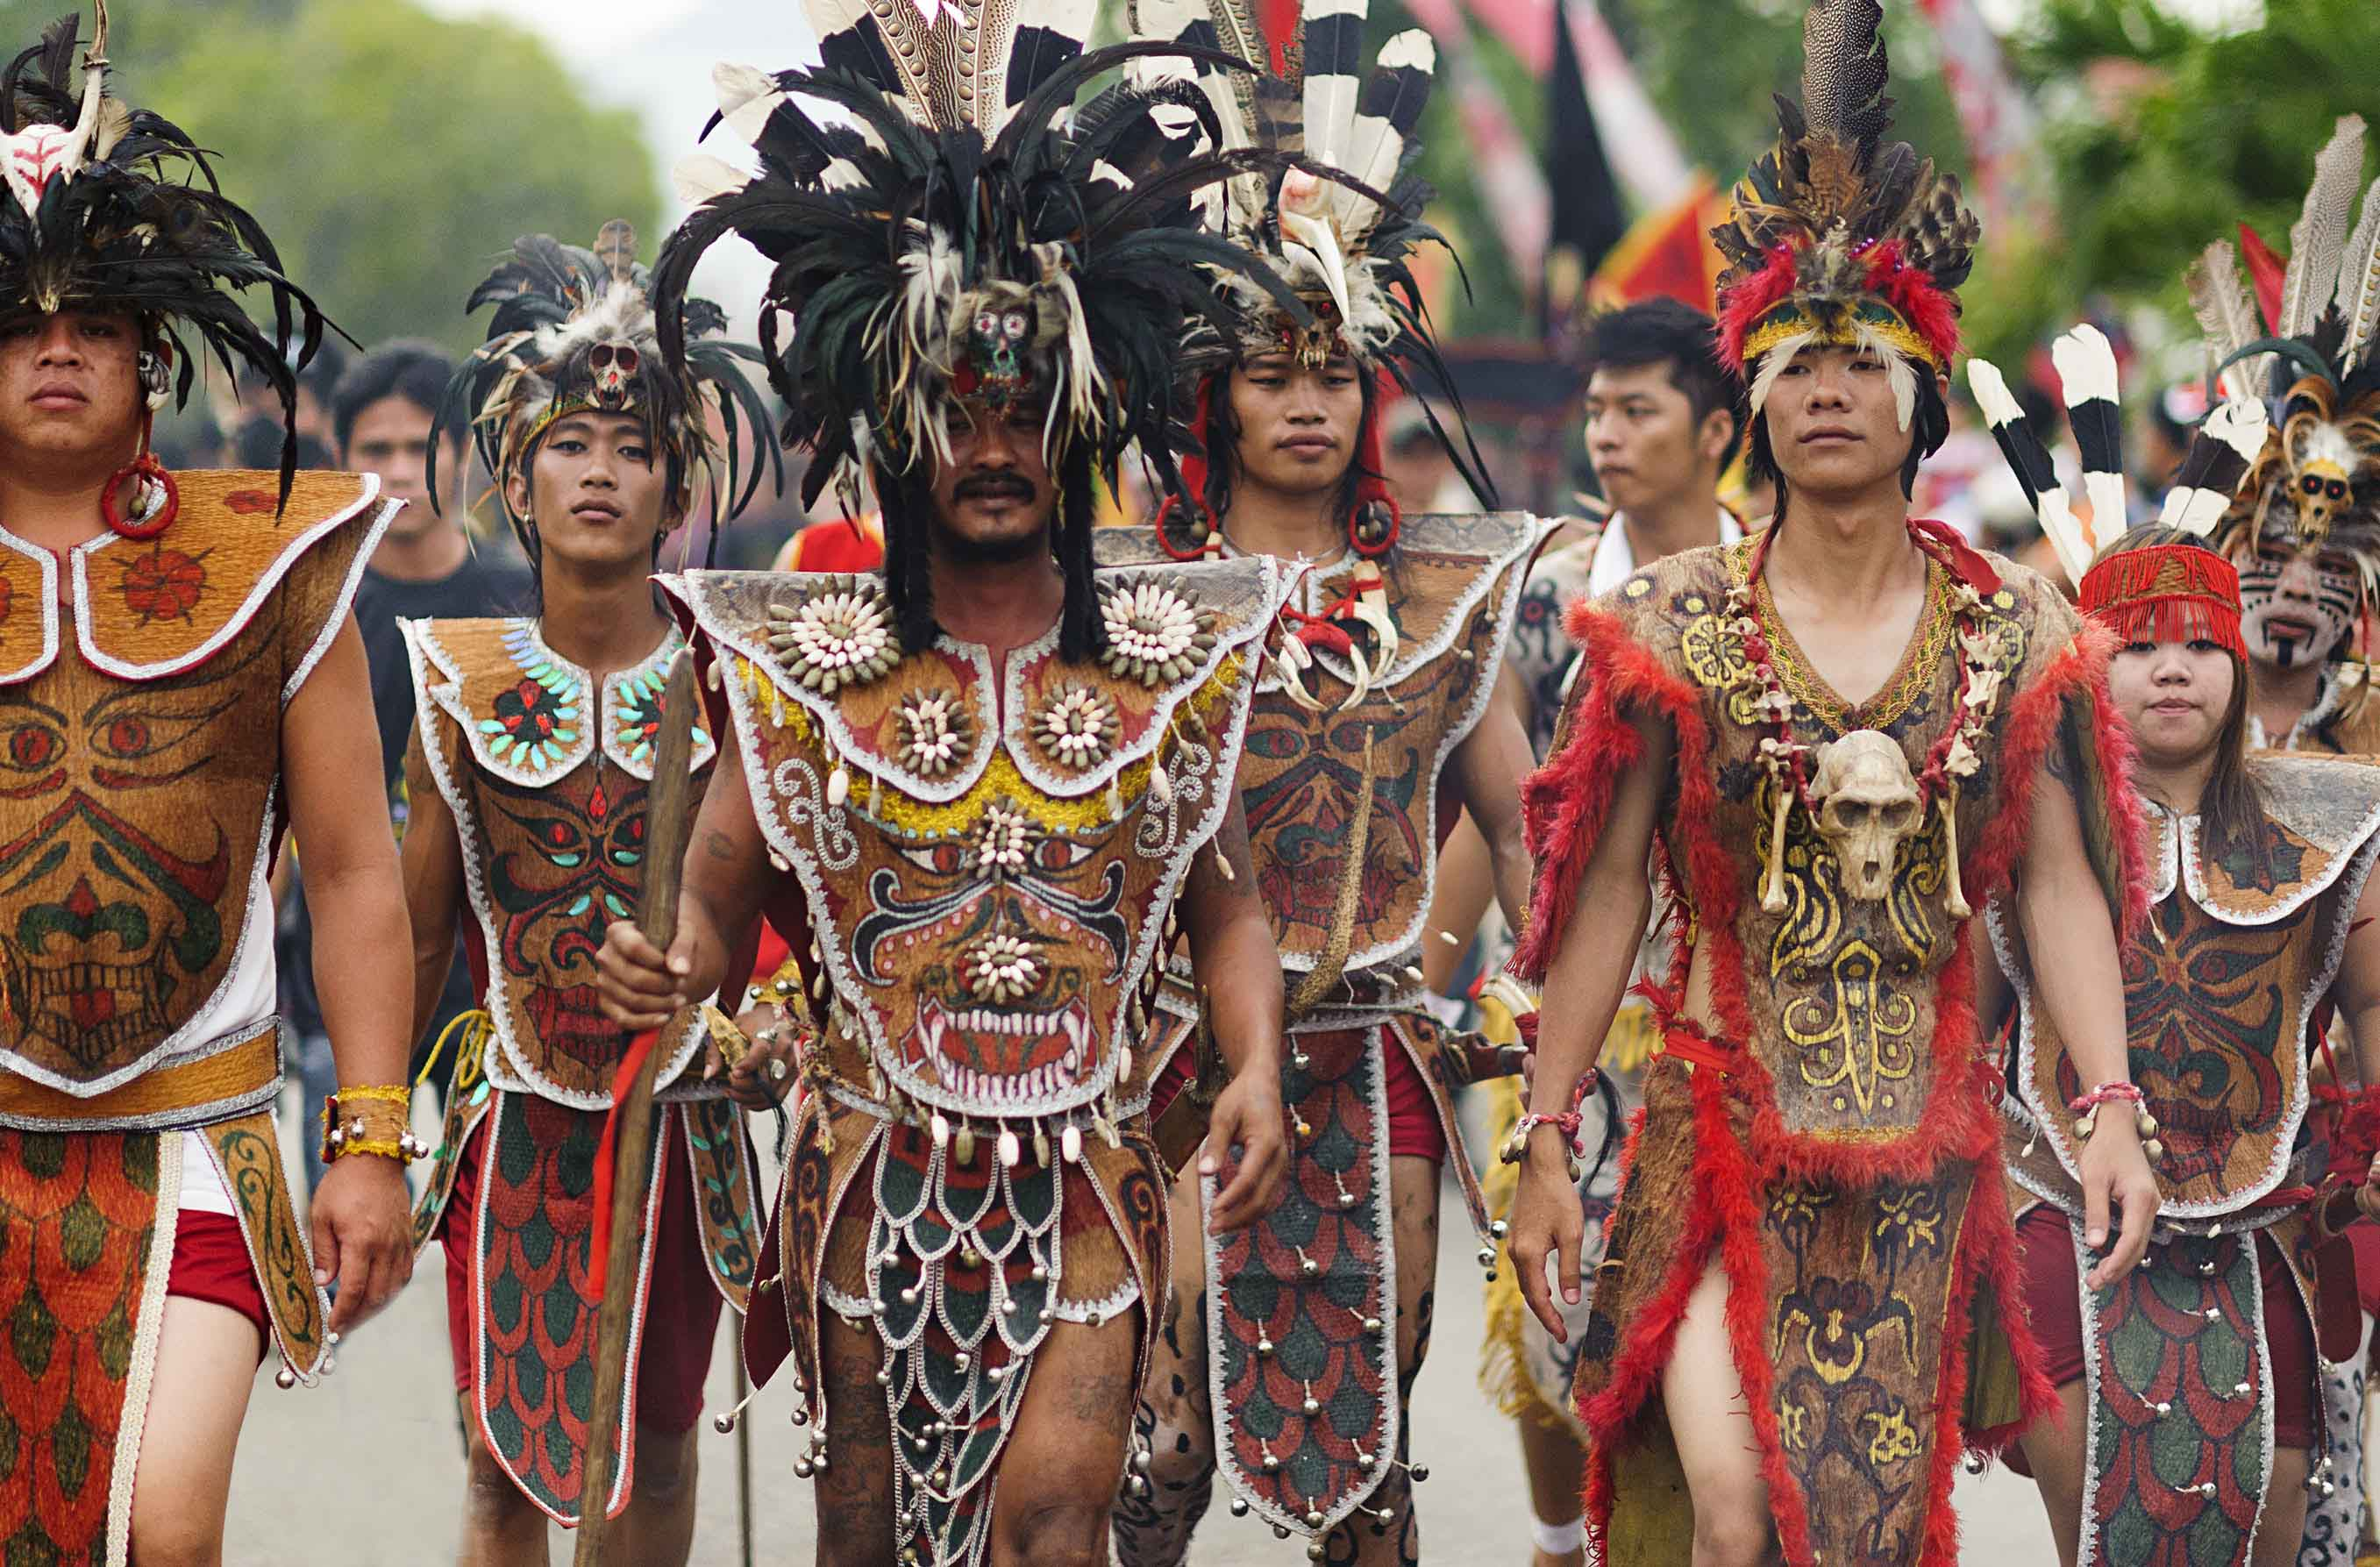 WEST KALIMANTAN & THE SHAMANS OF THE EQUATOR